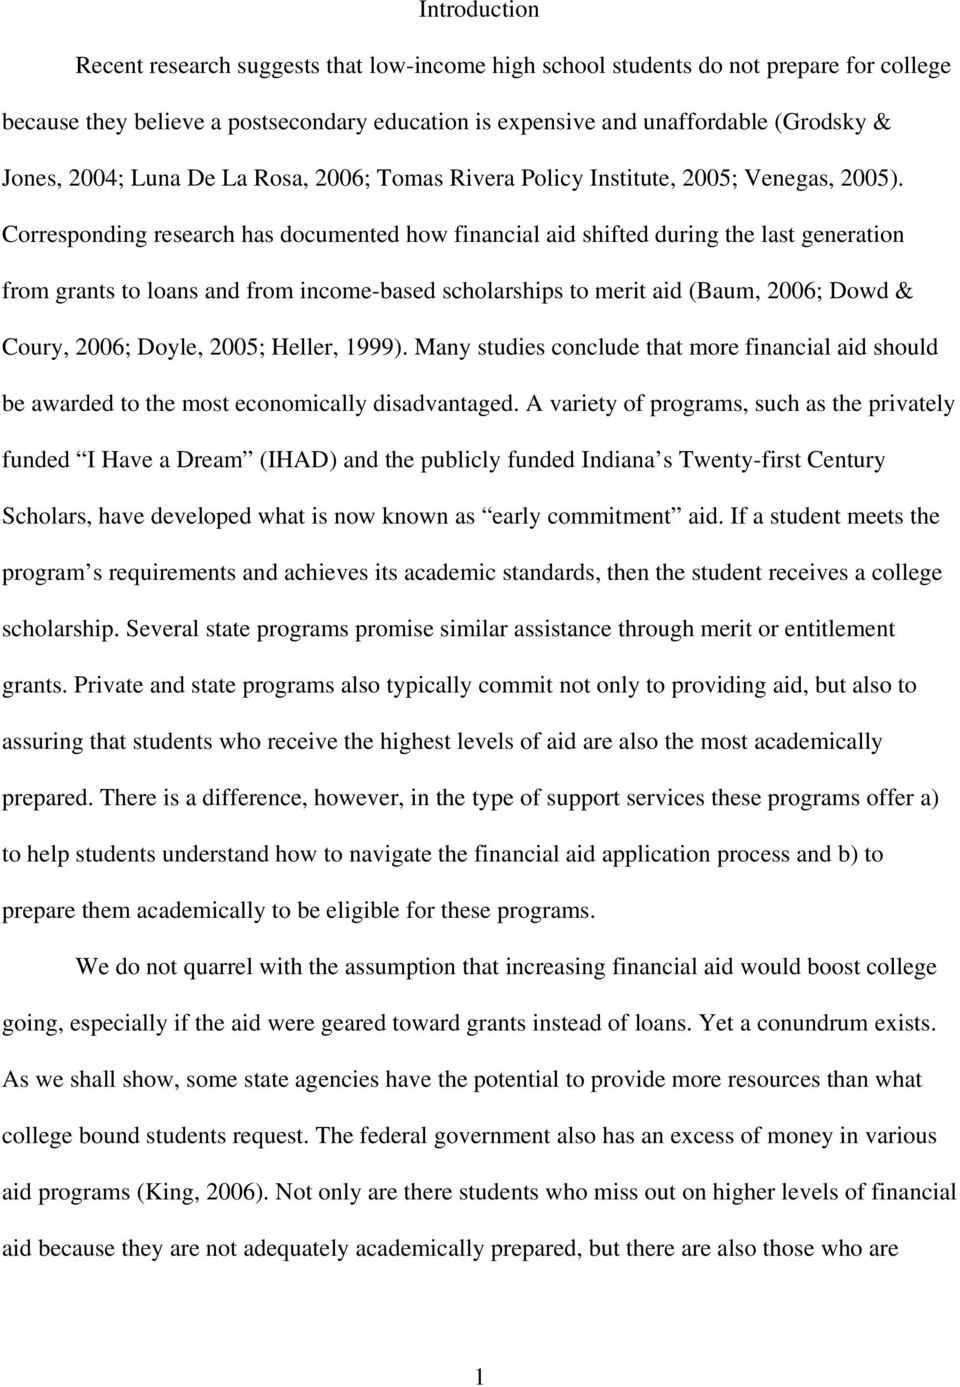 Corresponding research has documented how financial aid shifted during the last generation from grants to loans and from income-based scholarships to merit aid (Baum, 2006; Dowd & Coury, 2006; Doyle,